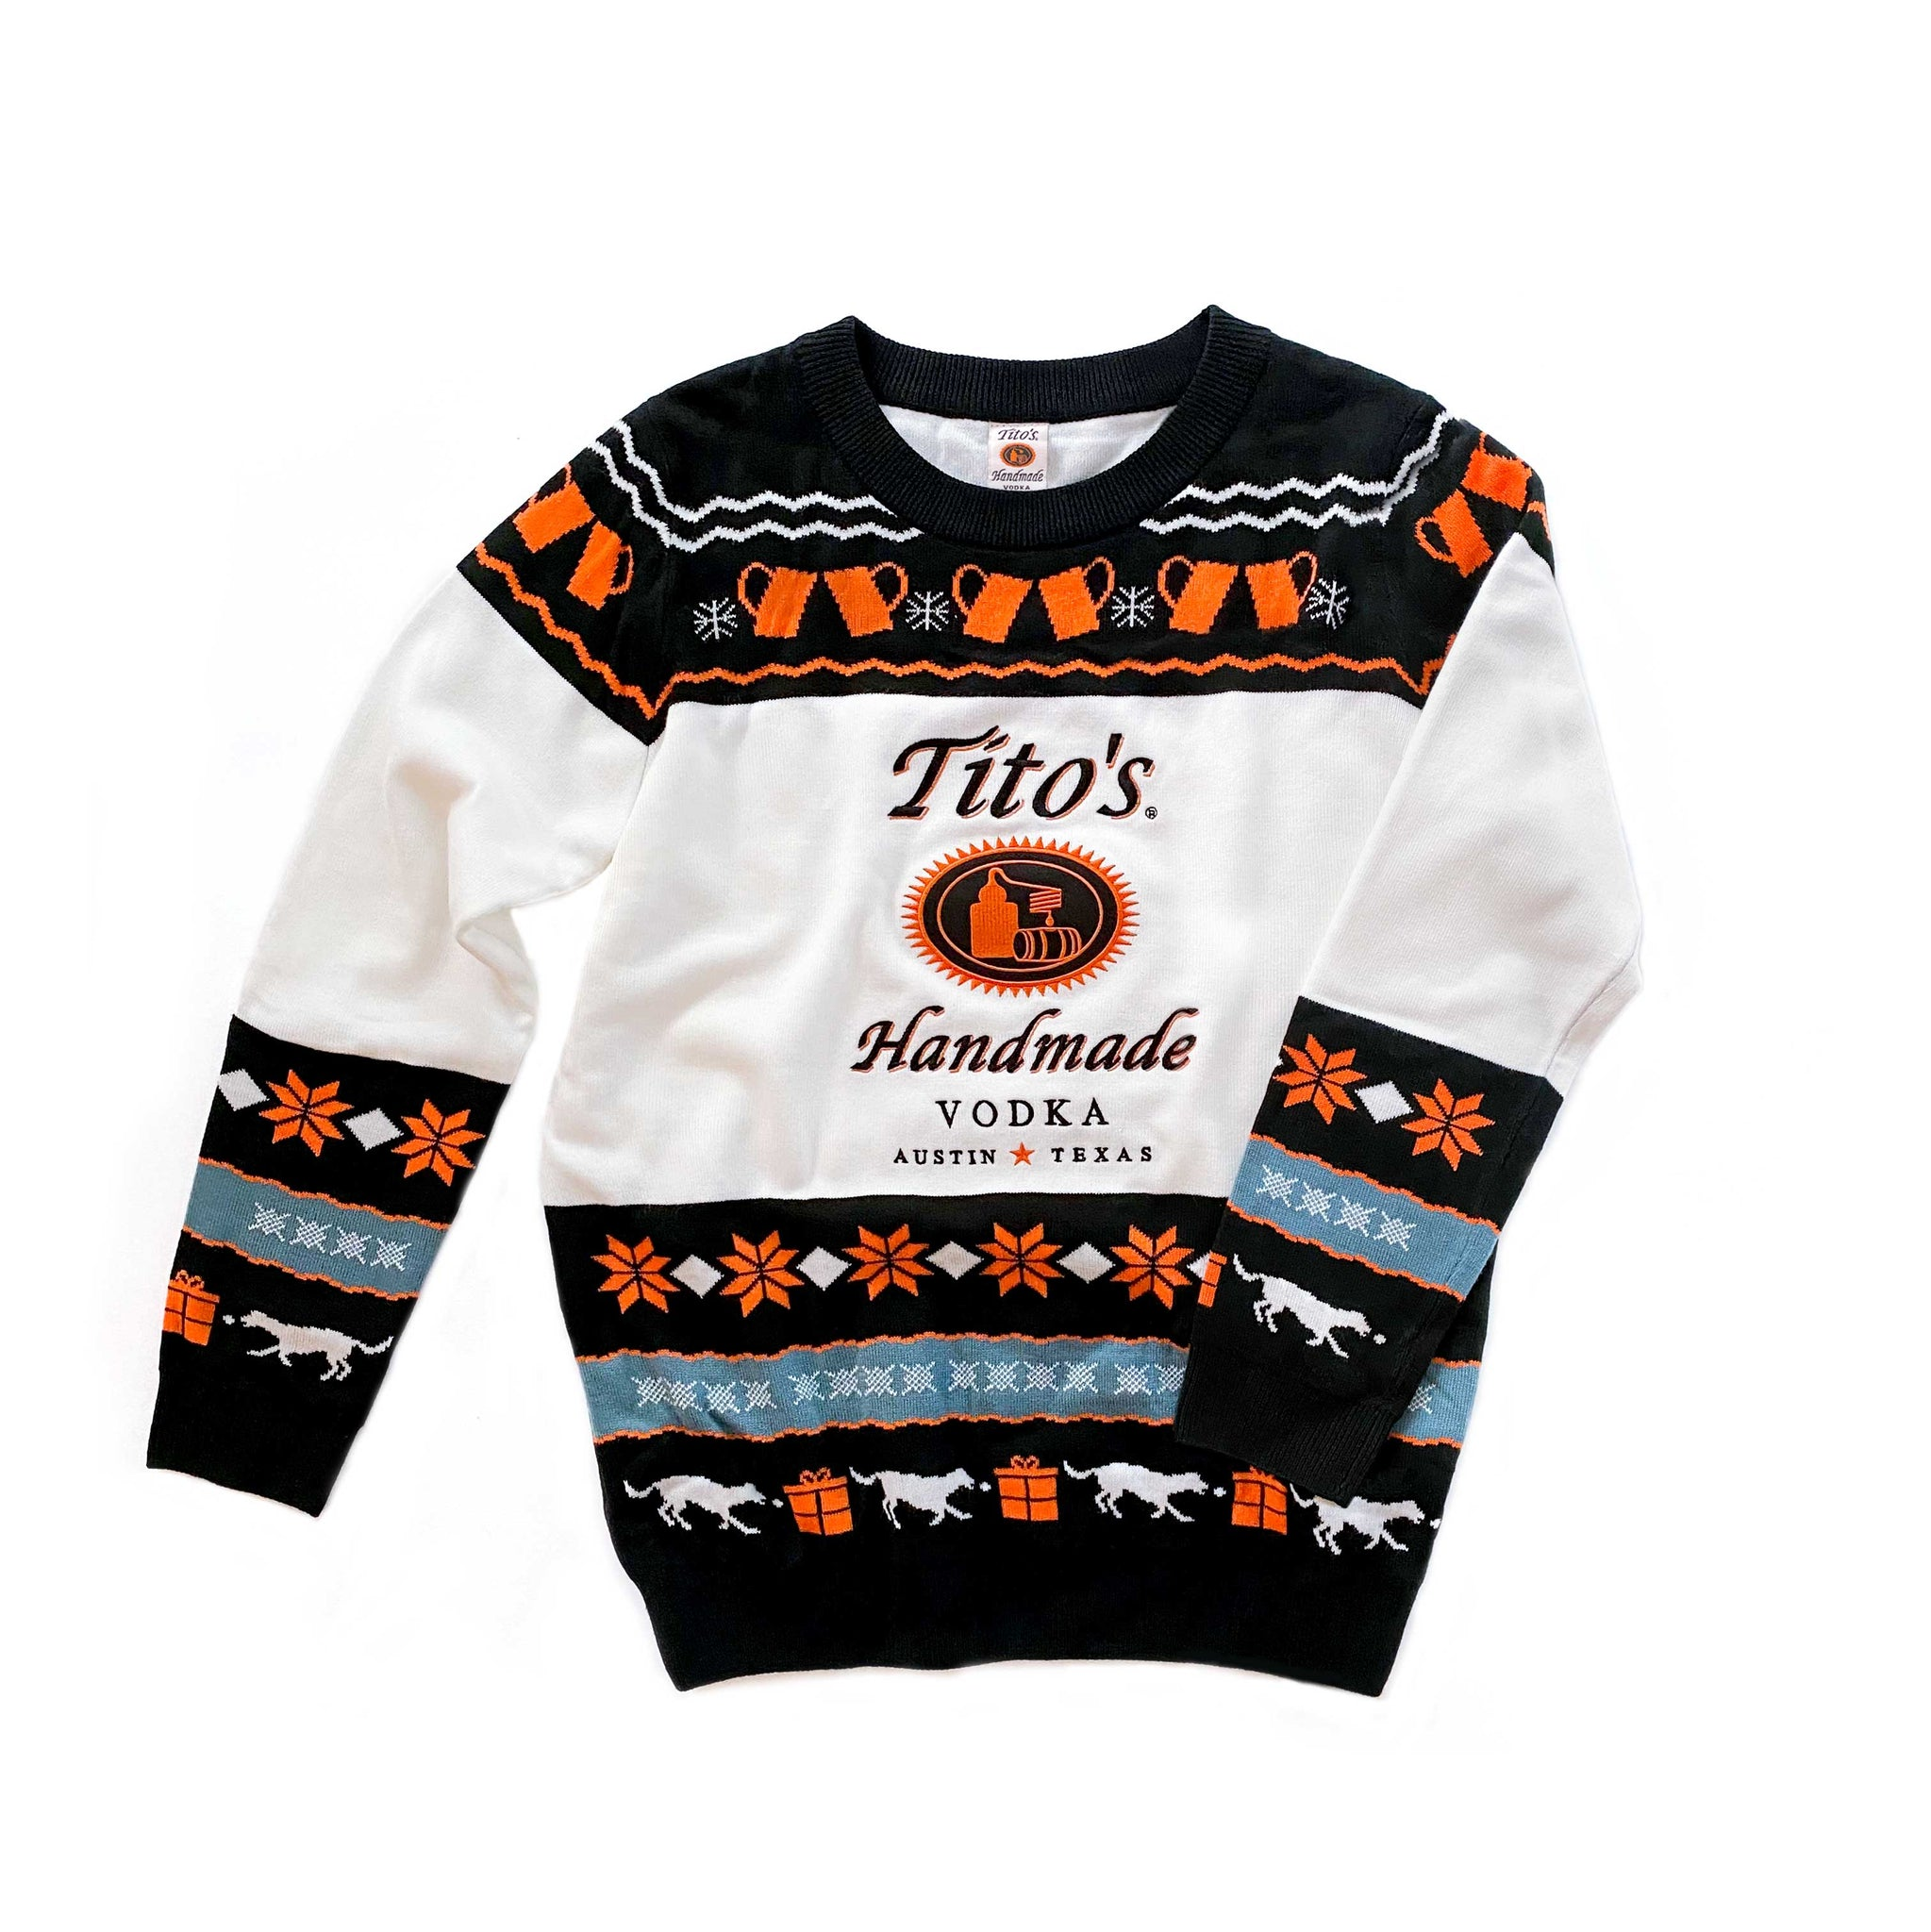 Front view of Tito's Ugly Sweater with Tito's Handmade Vodka logo, and holiday designs of copper mugs, snowflakes, and dogs